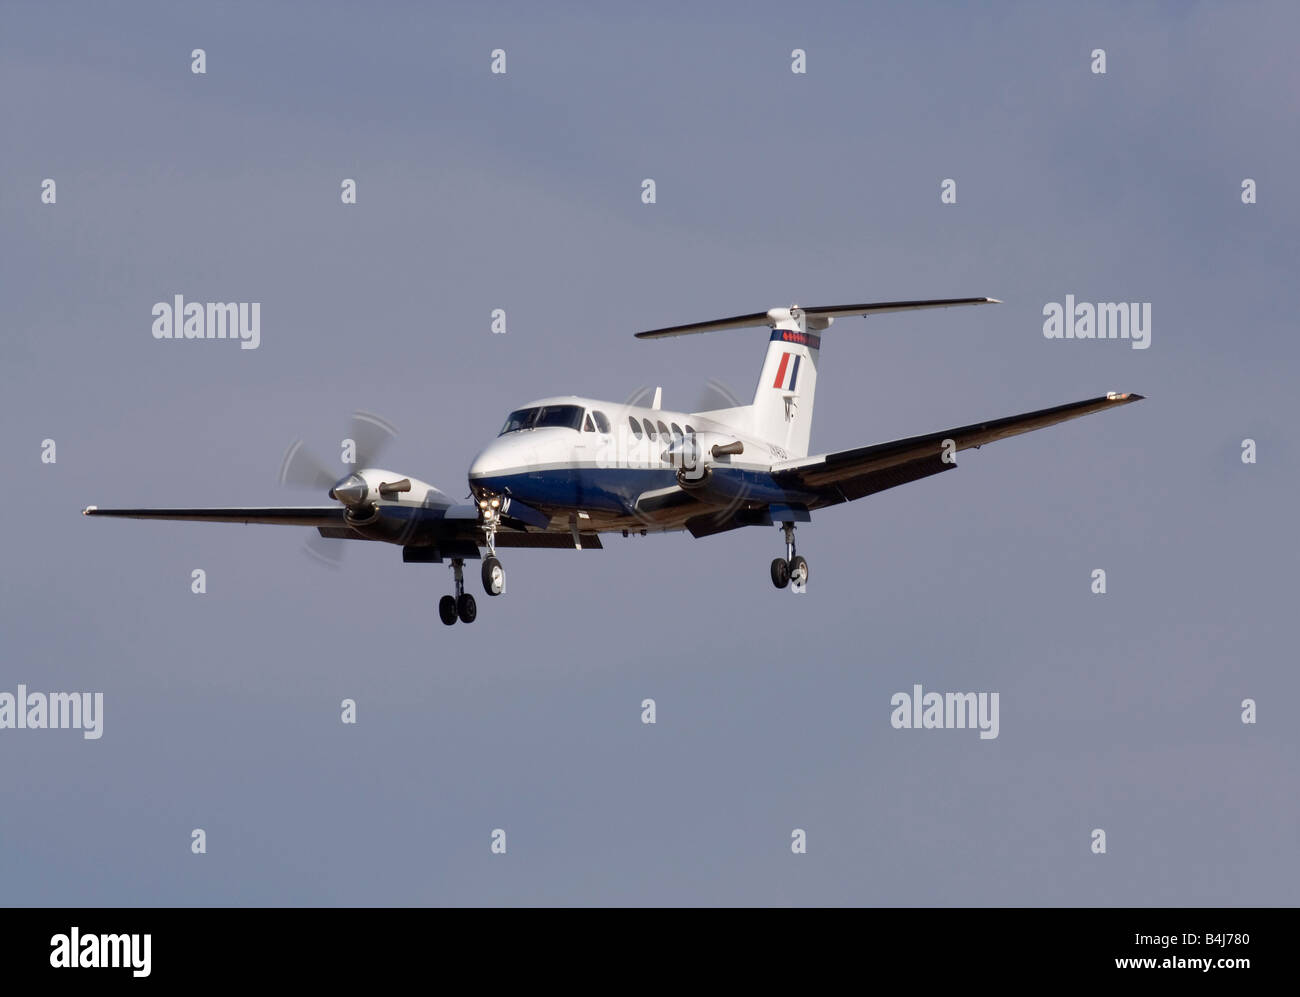 Military aviation. Beechcraft B200 Super King Air twin engine turboprop training aircraft of the Royal Air Force - Stock Image